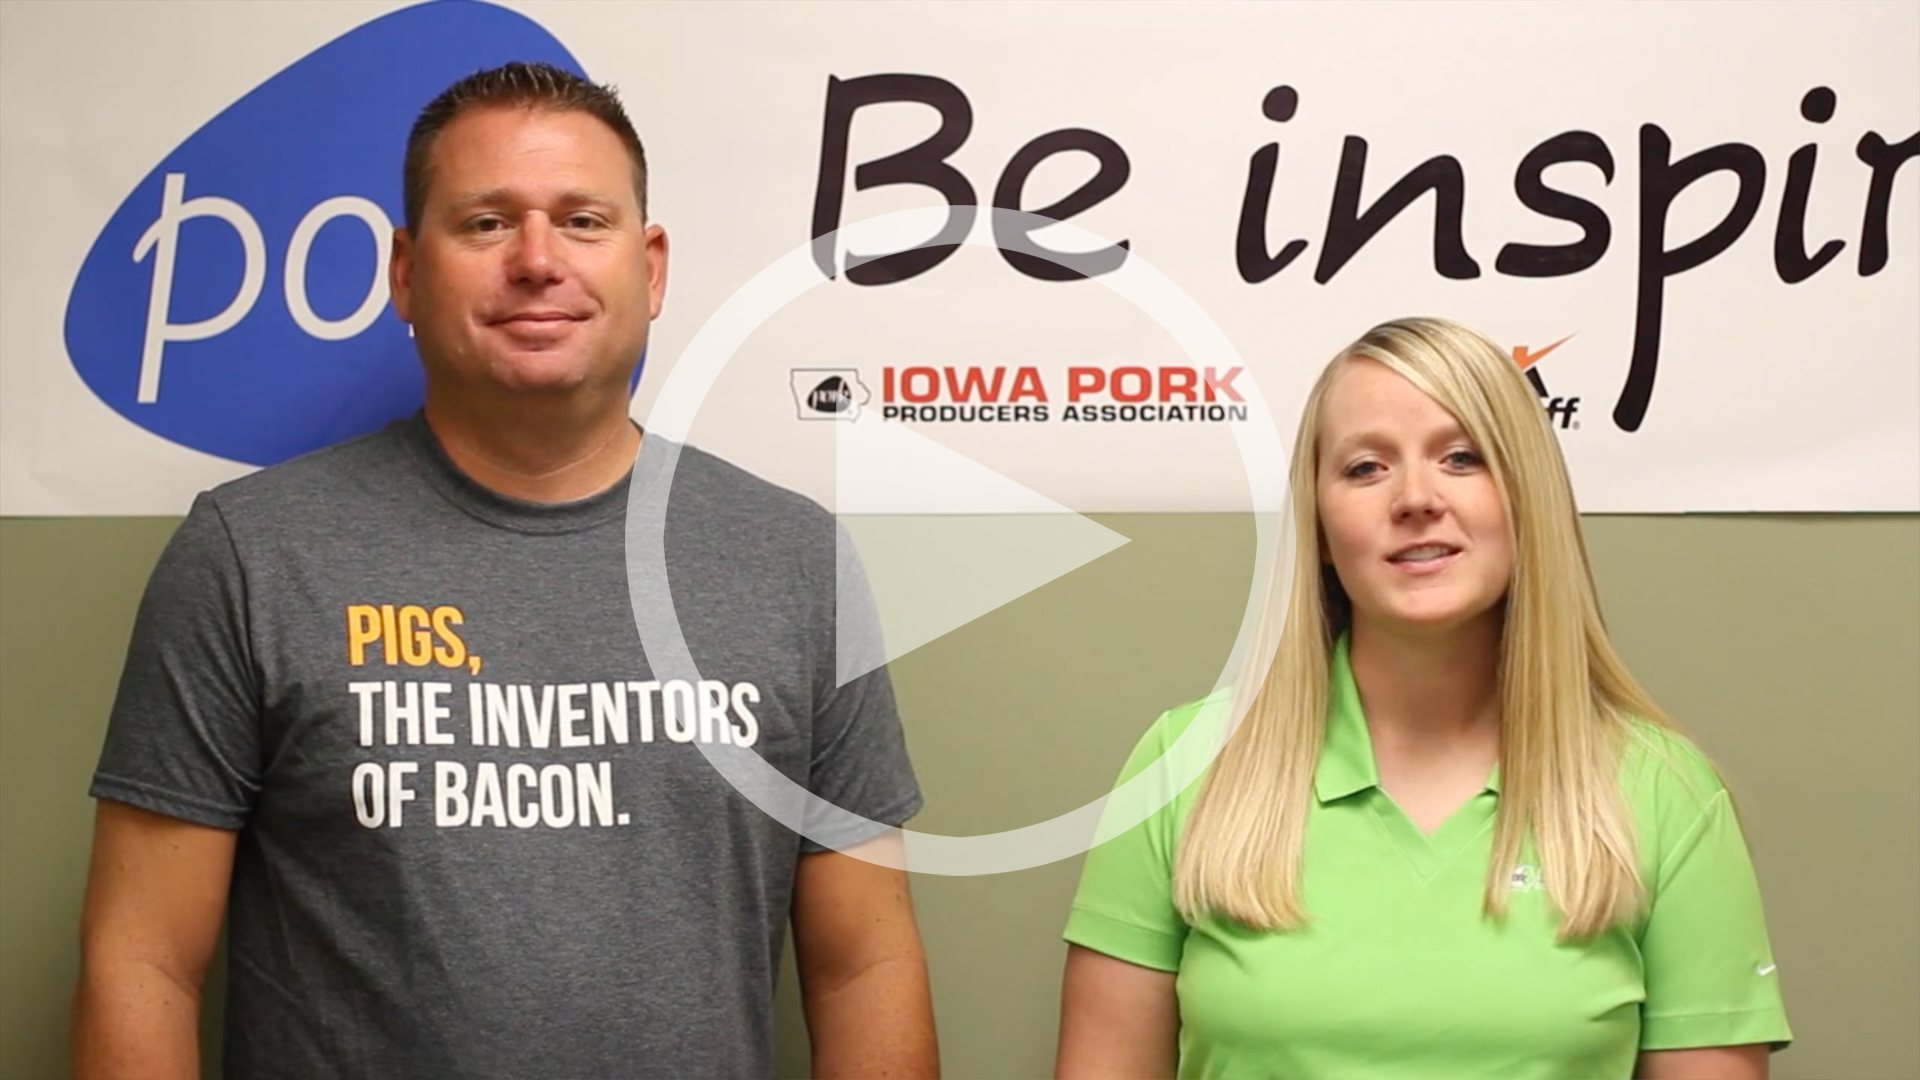 Iowa Pork Producers Association 2015 – Video